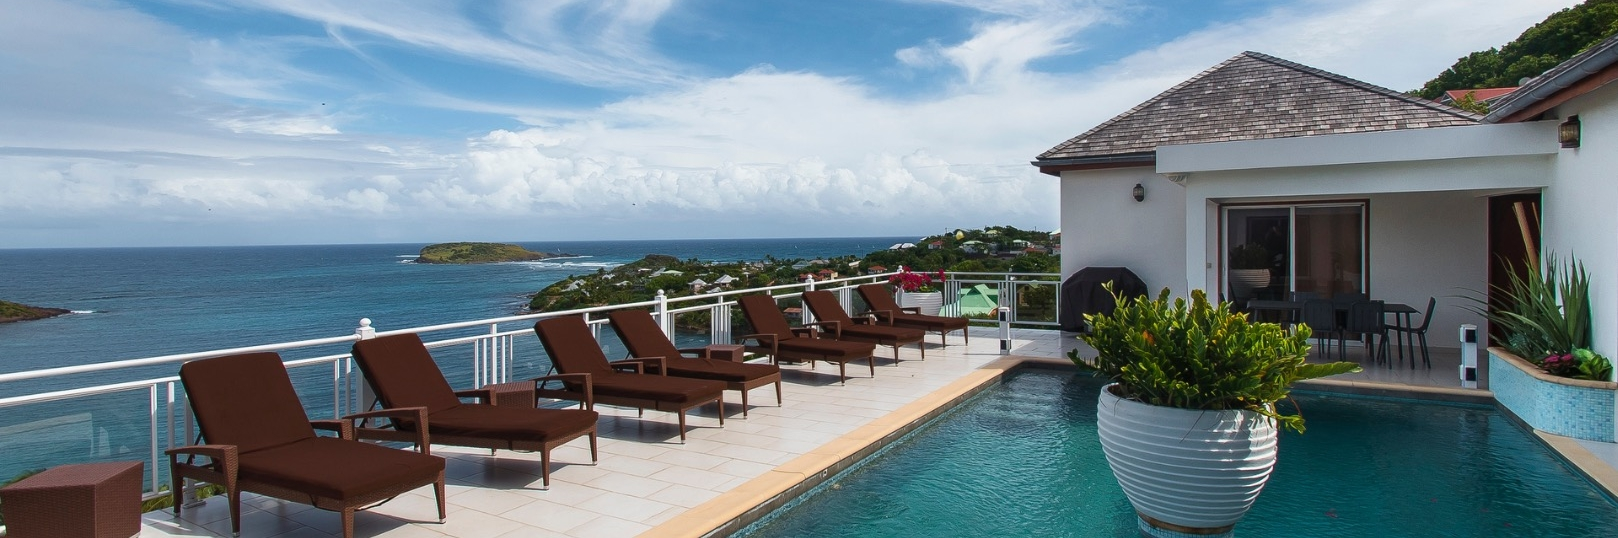 Saint Barth - Villa Bellevue